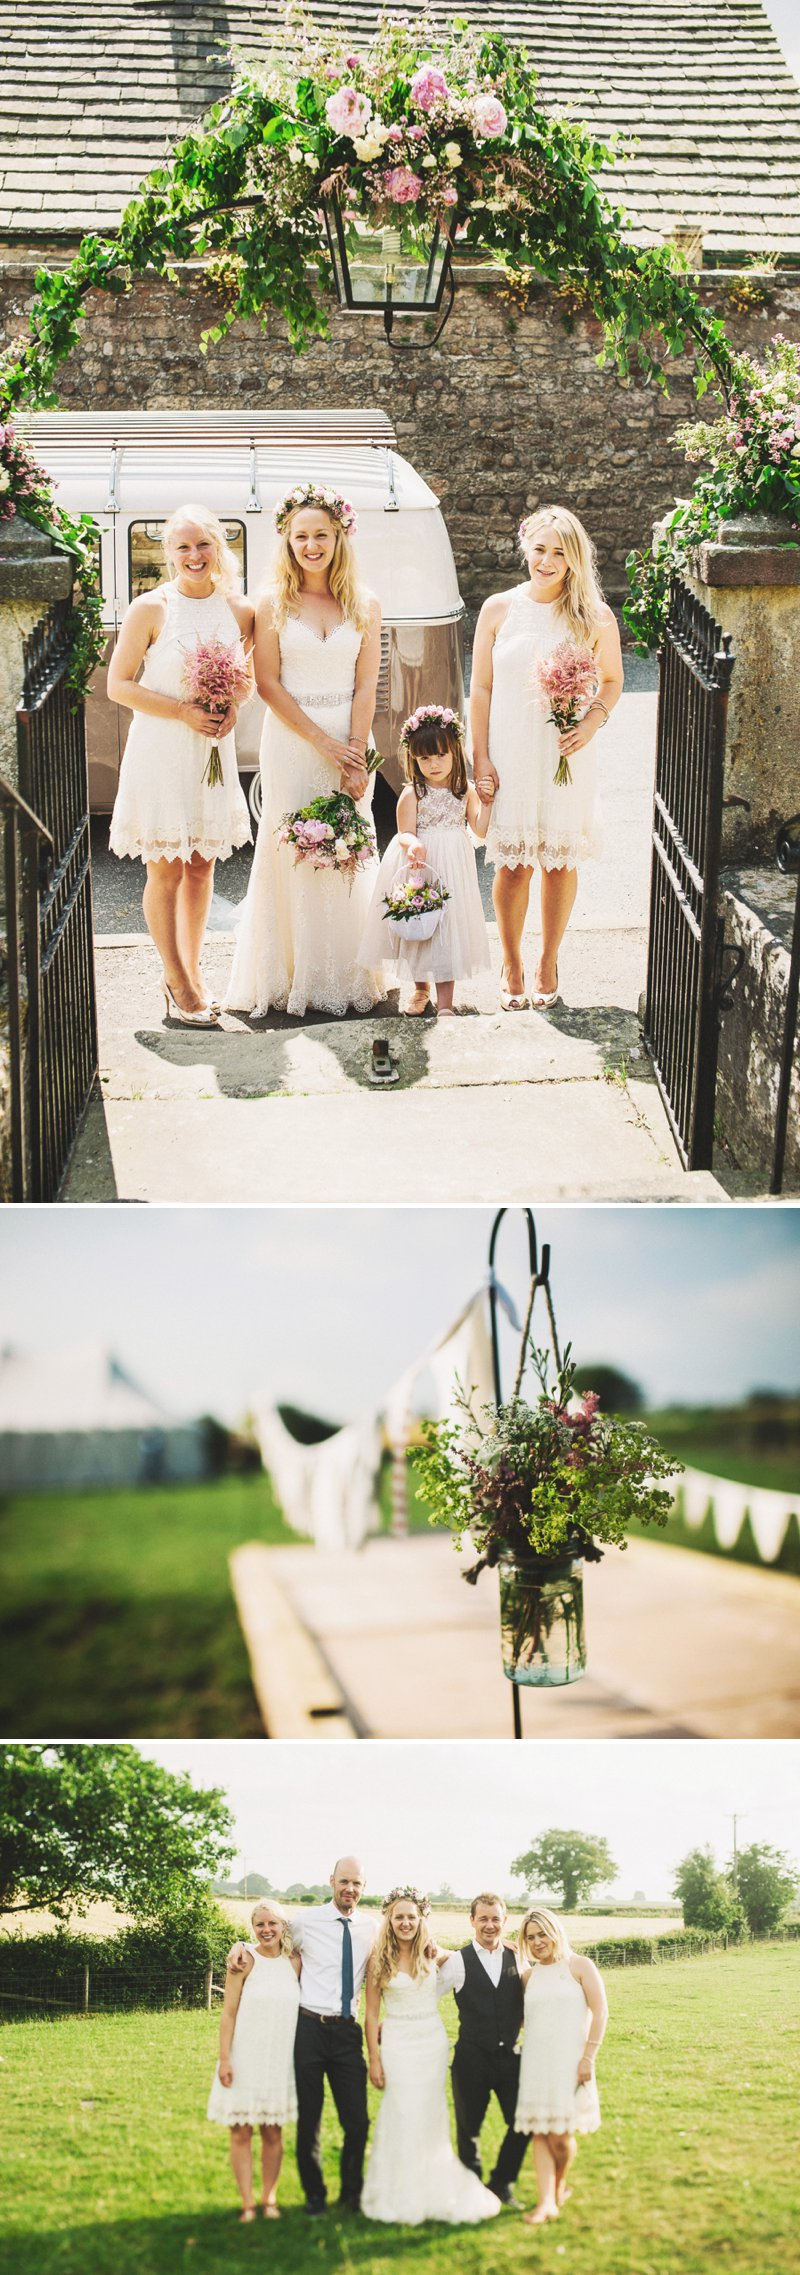 Rustic Marquee Wedding At Mallard Grange In Yorkshire With A Dusty Pink Cream And Grey Colour Scheme With Bride In Gown From Eternity Bridal With A Vintage VW Camper Van 1 On The Farm For A Country Fete Wedding.